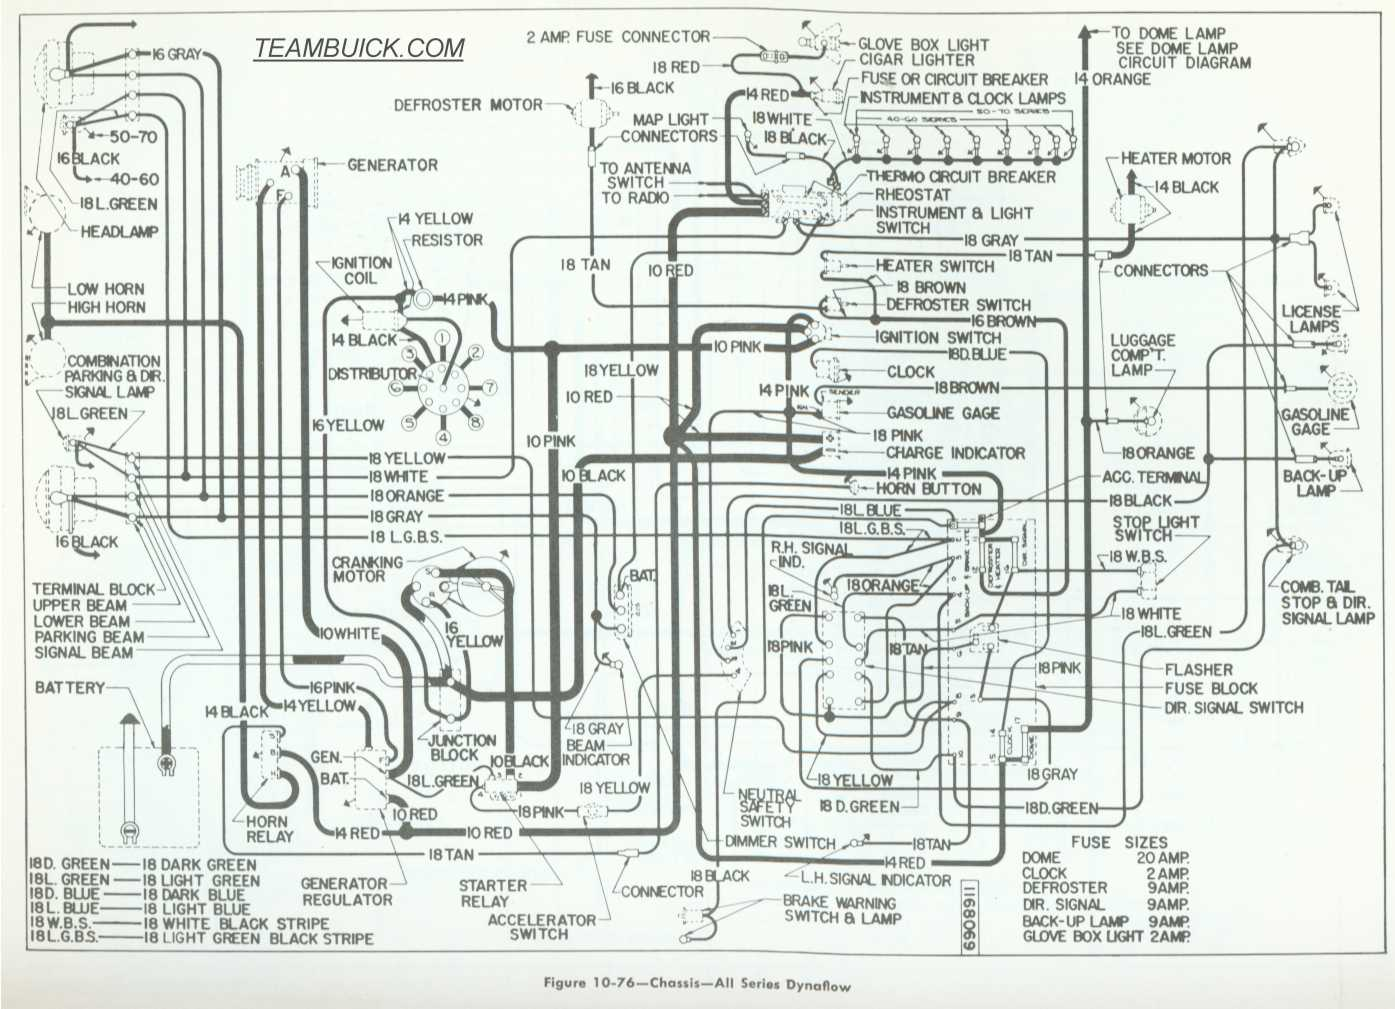 1955 buick wiring diagram 1955 discover your wiring diagram 1955 buick wiring diagrams dynaflow